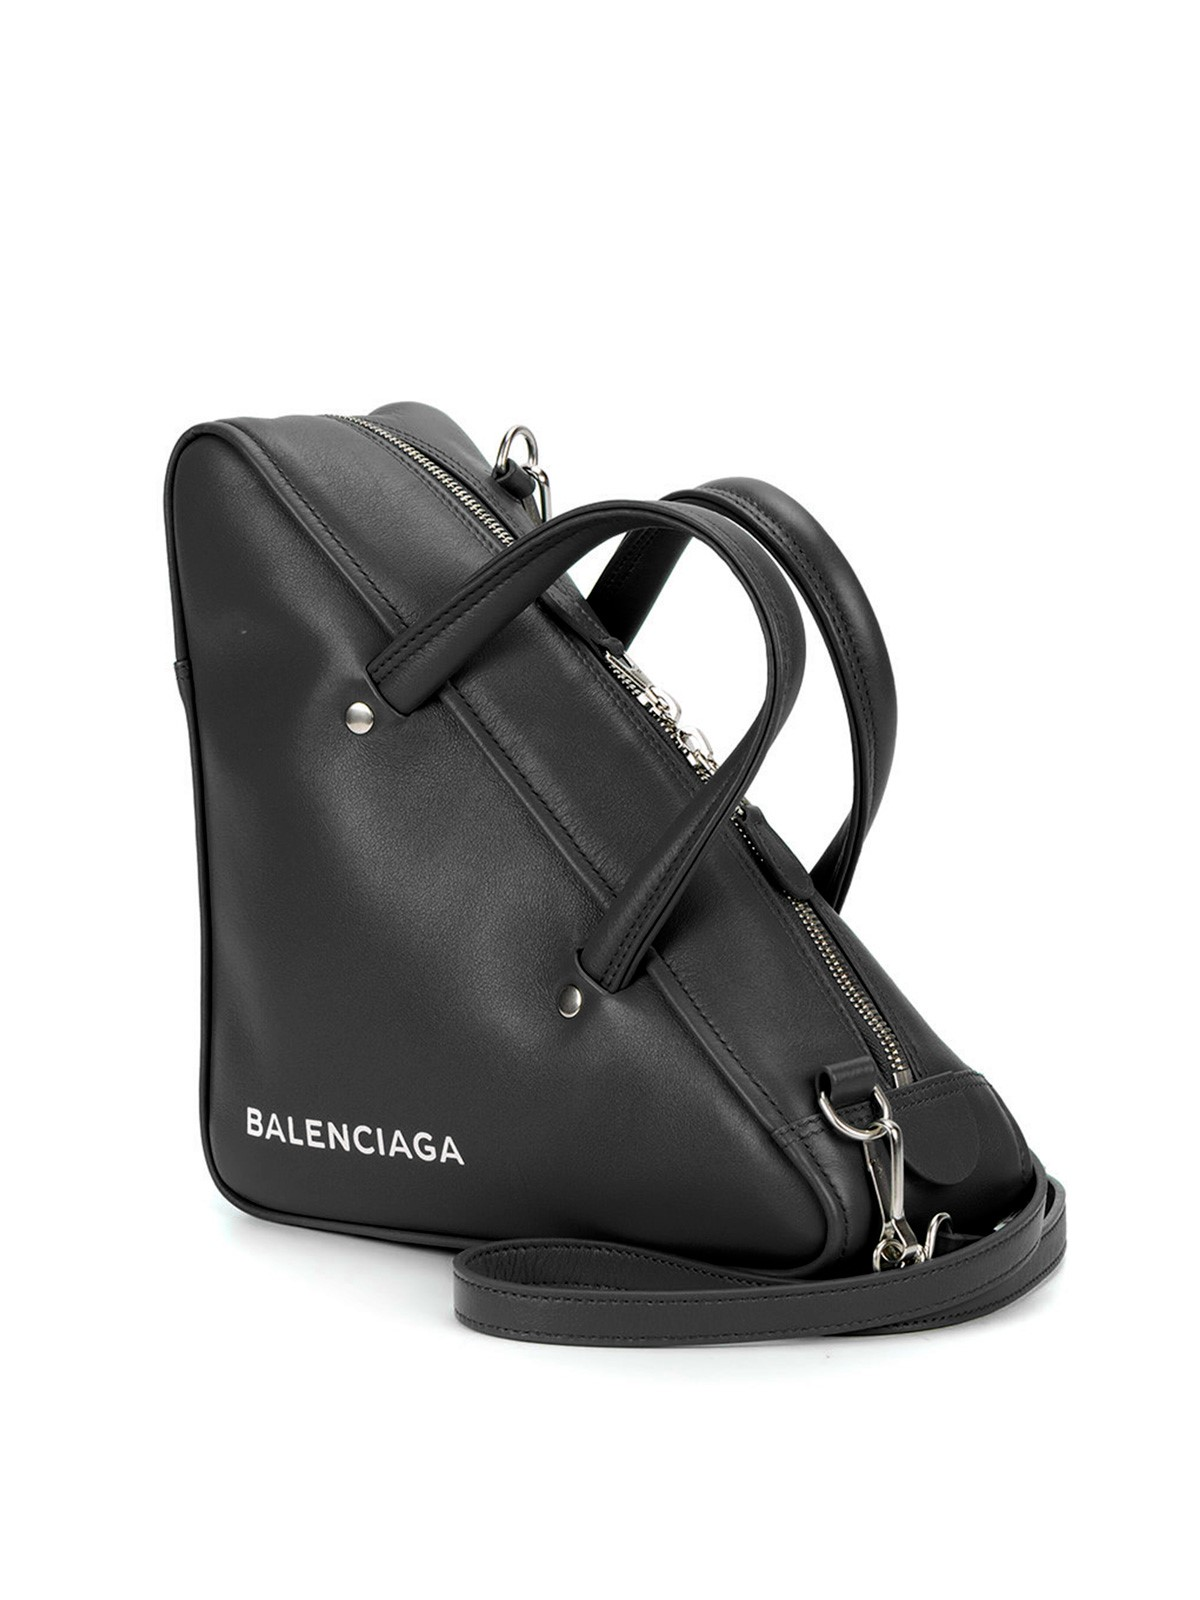 1d746d012db3 balenciaga TRIANGLE DUFFLE BAG available on montiboutique.com - 22518